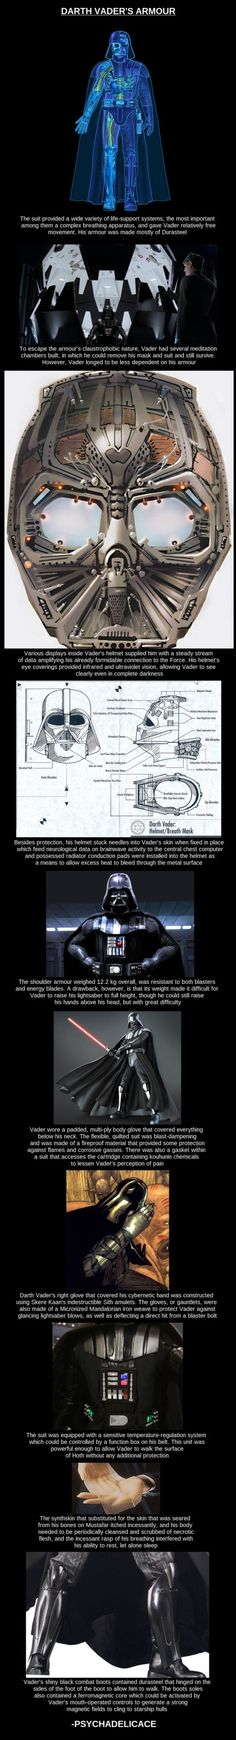 The technology behind Vader's suit.